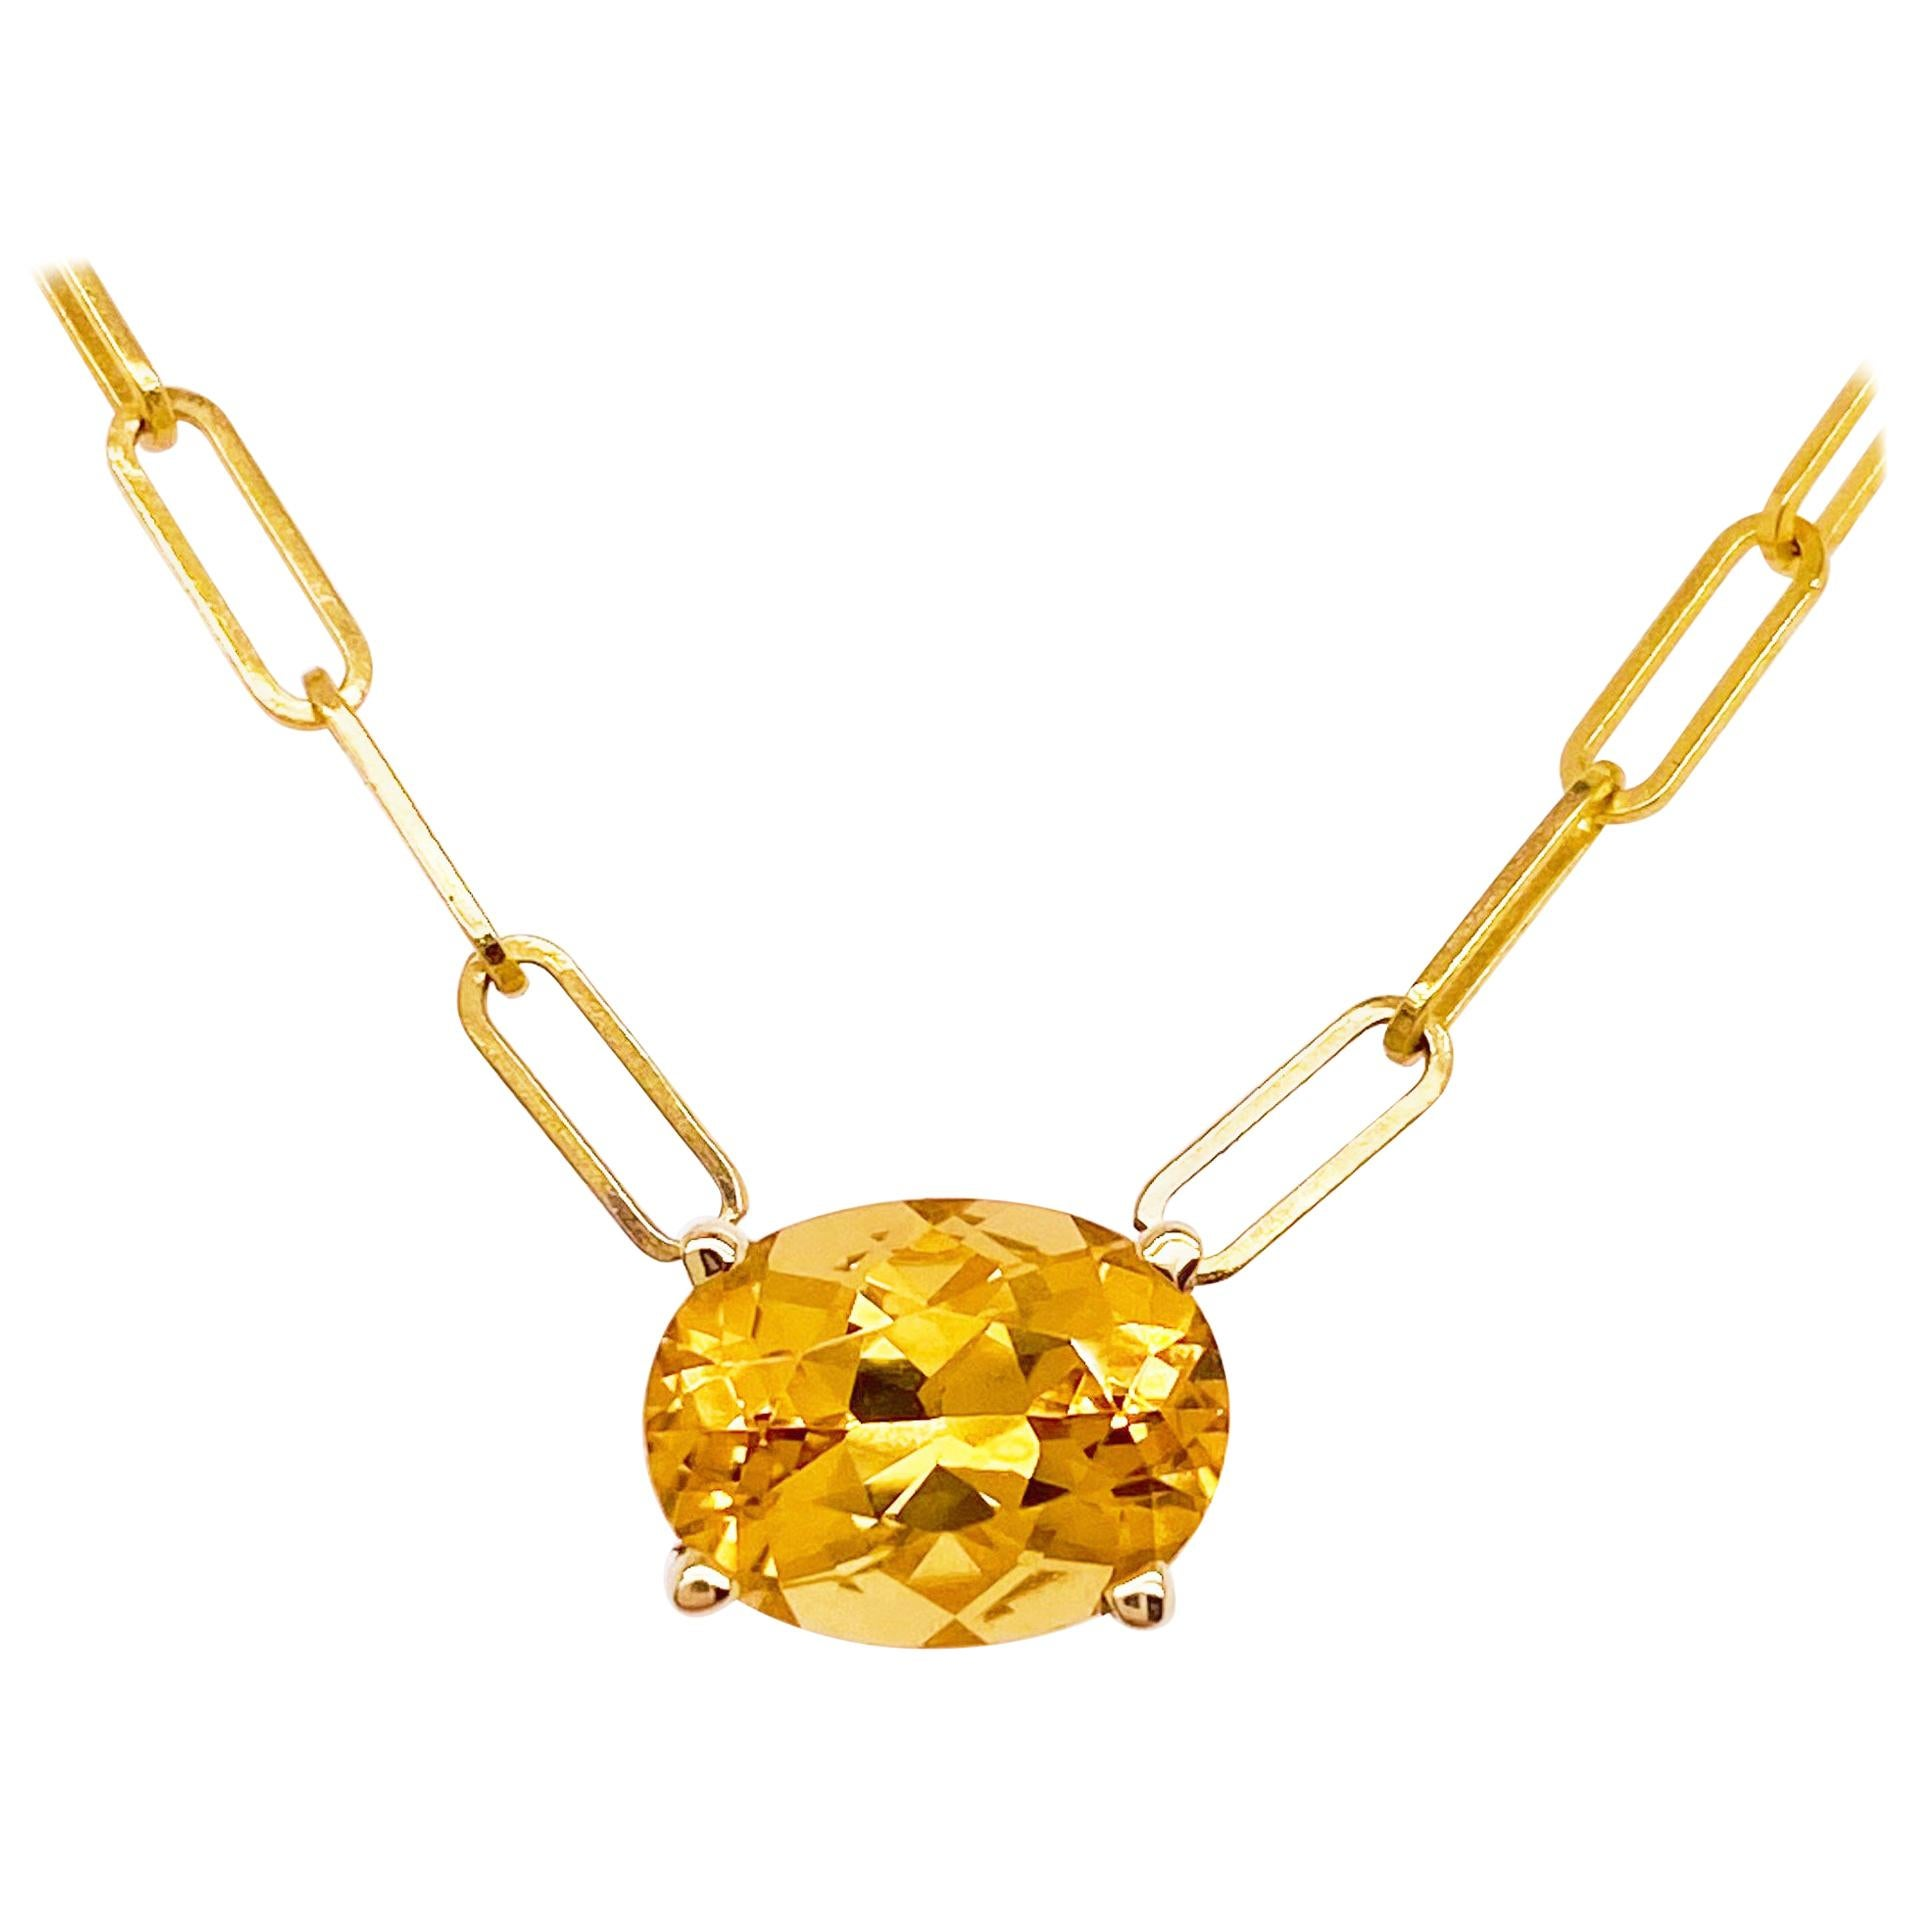 Citrine Link Necklace Yellow Gold Paperclip Chain, Paper Clip Necklace Pendant